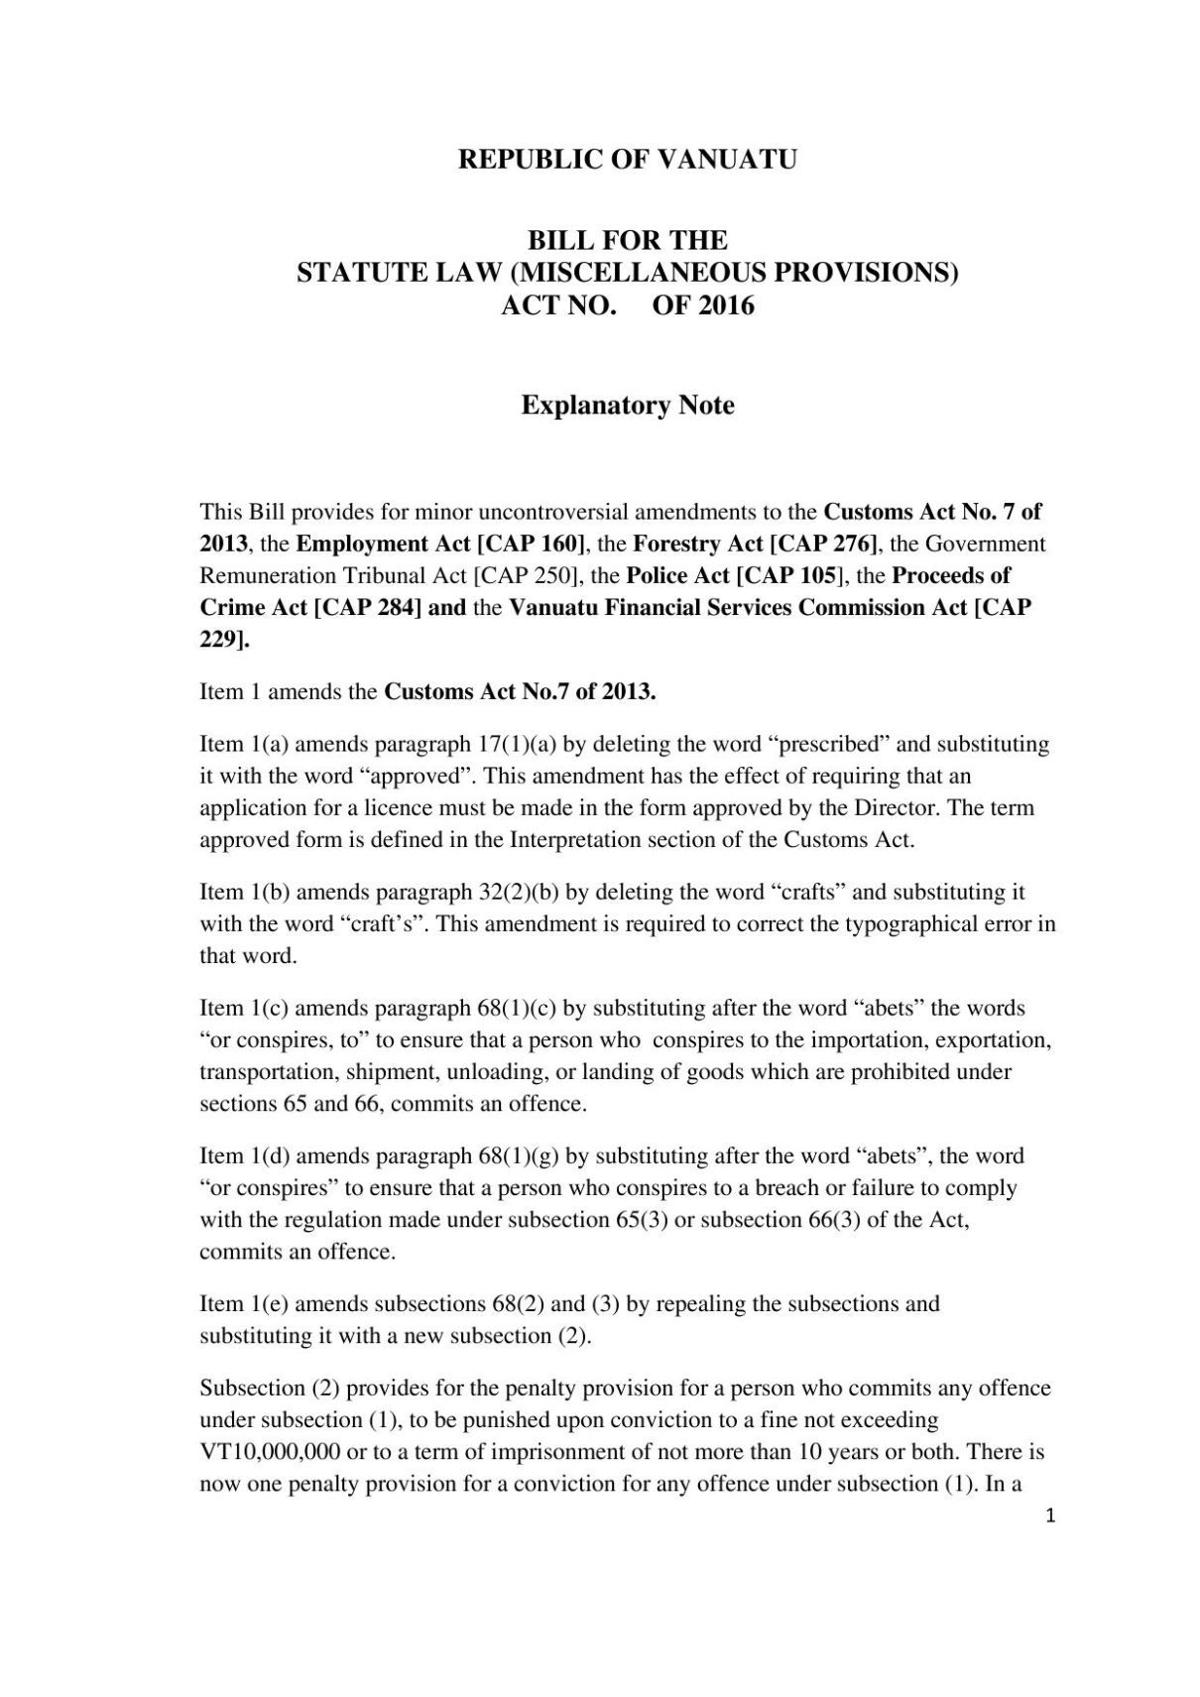 Bill for the Statute Law (Miscellaneous Provisions) Act No. of 2016.pdf